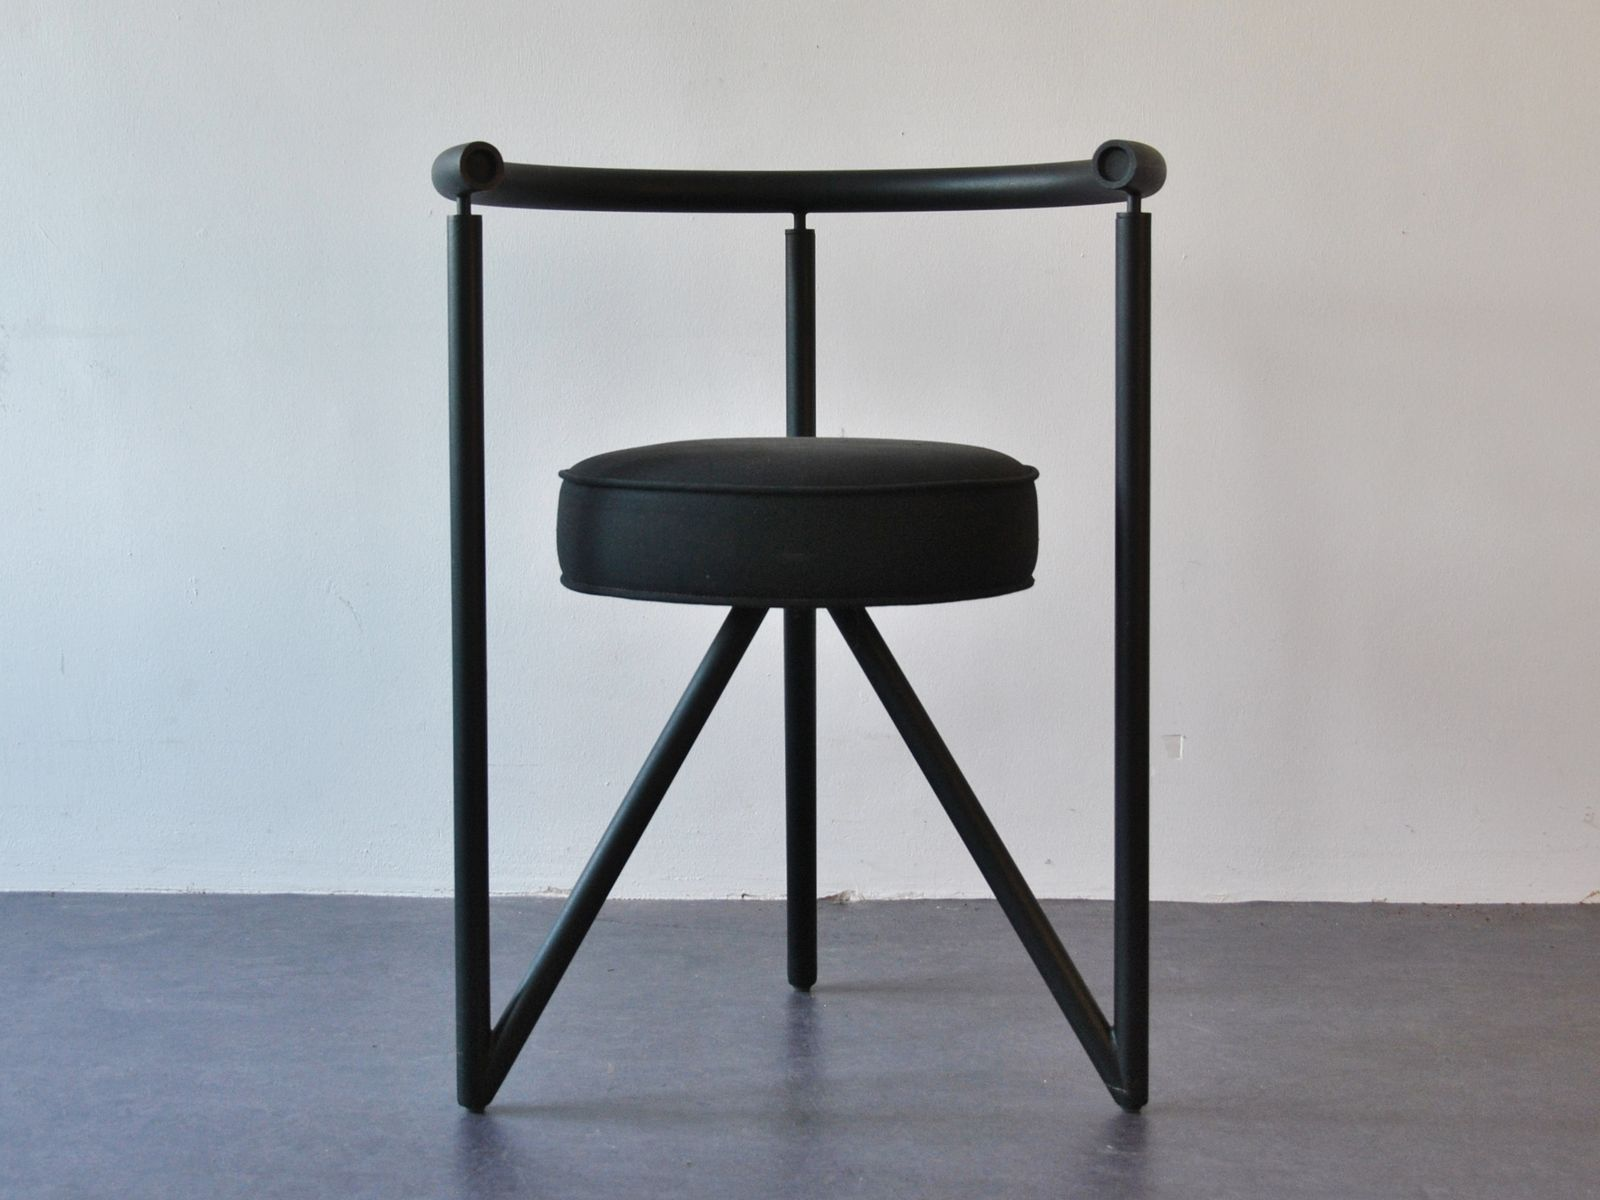 miss dorn dining chairs by philippe starck set of 4 for sale at pamono. Black Bedroom Furniture Sets. Home Design Ideas